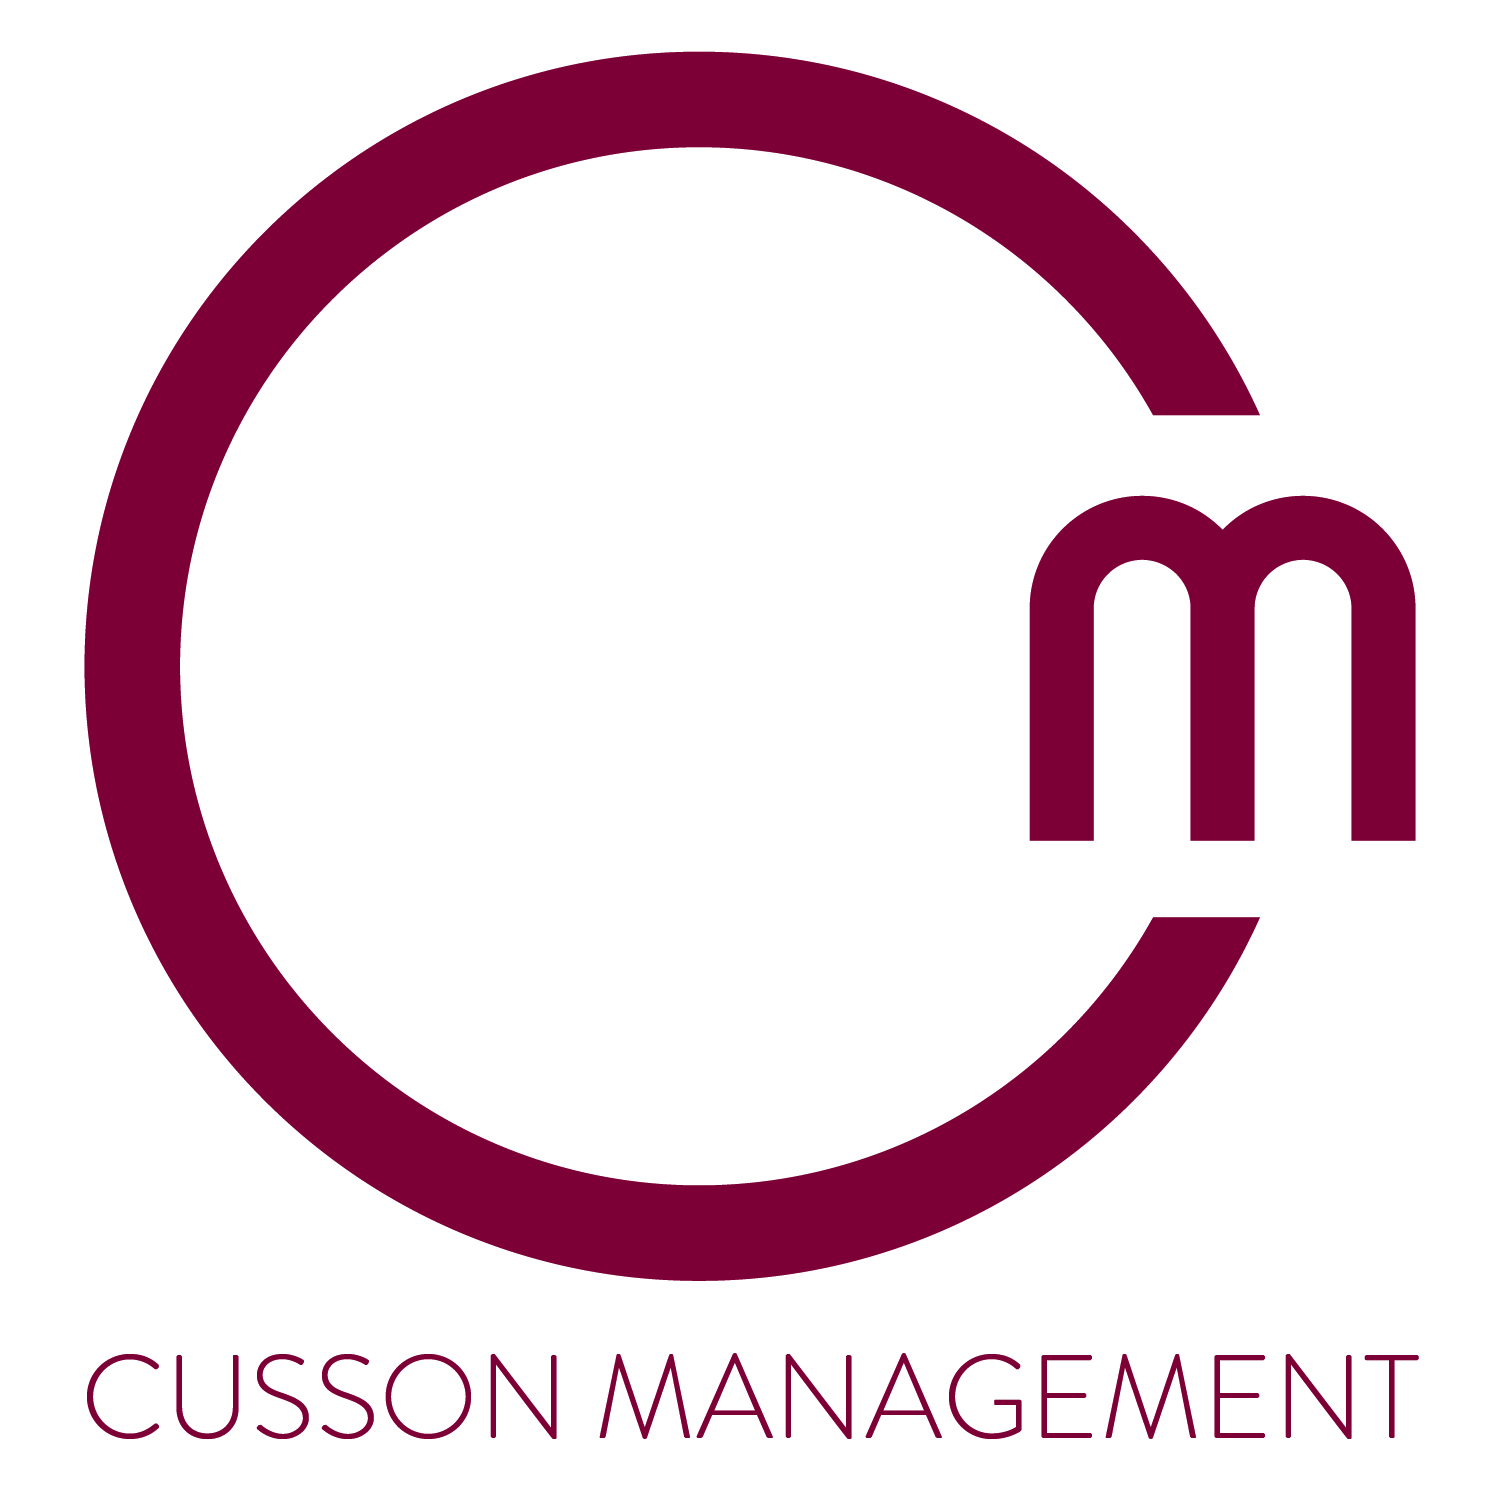 CussonManagement Logo 2